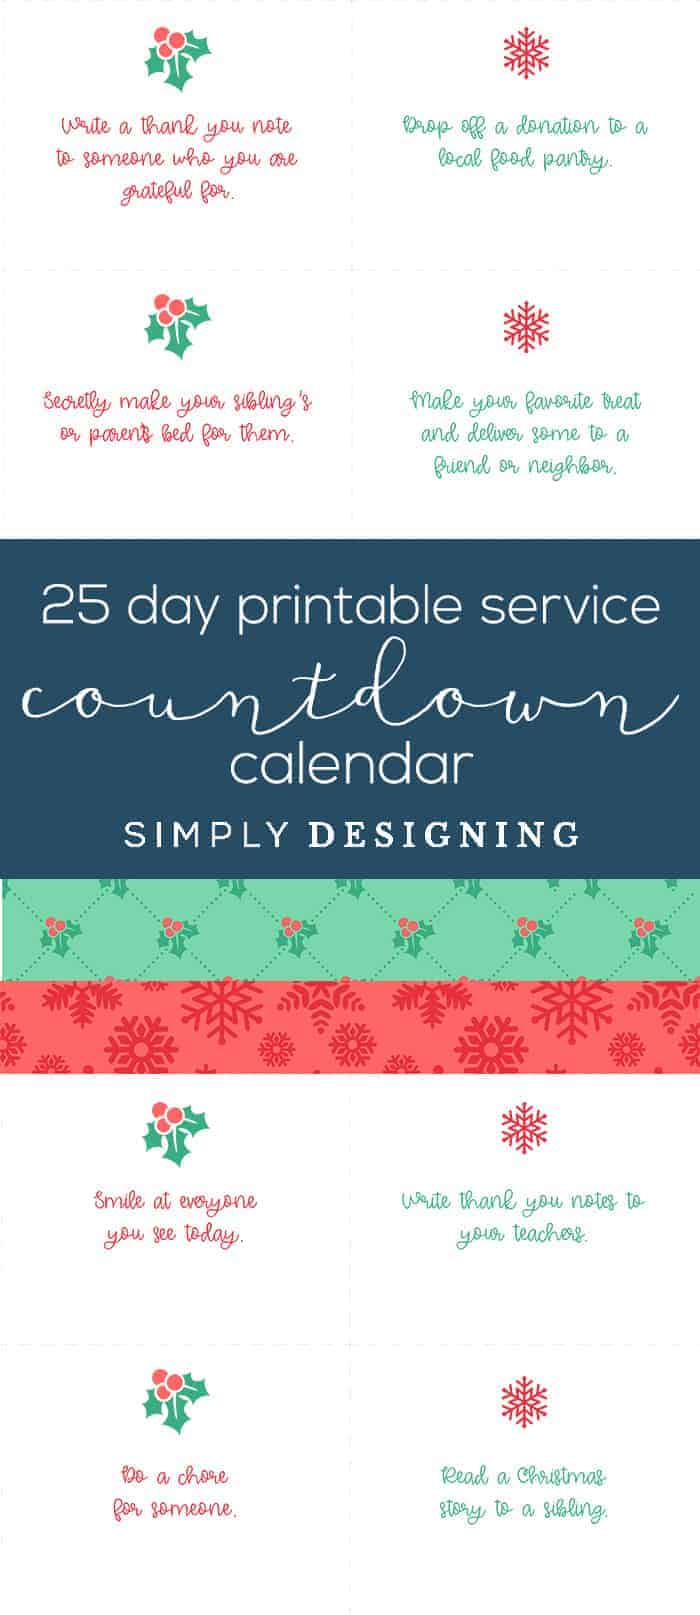 25 Day Free Printable Christmas Countdown Calendar - service countdown calendar - #ad #bhghowiholiday #bhglivebetter #bhgatwalmart @BHGLiveBetter